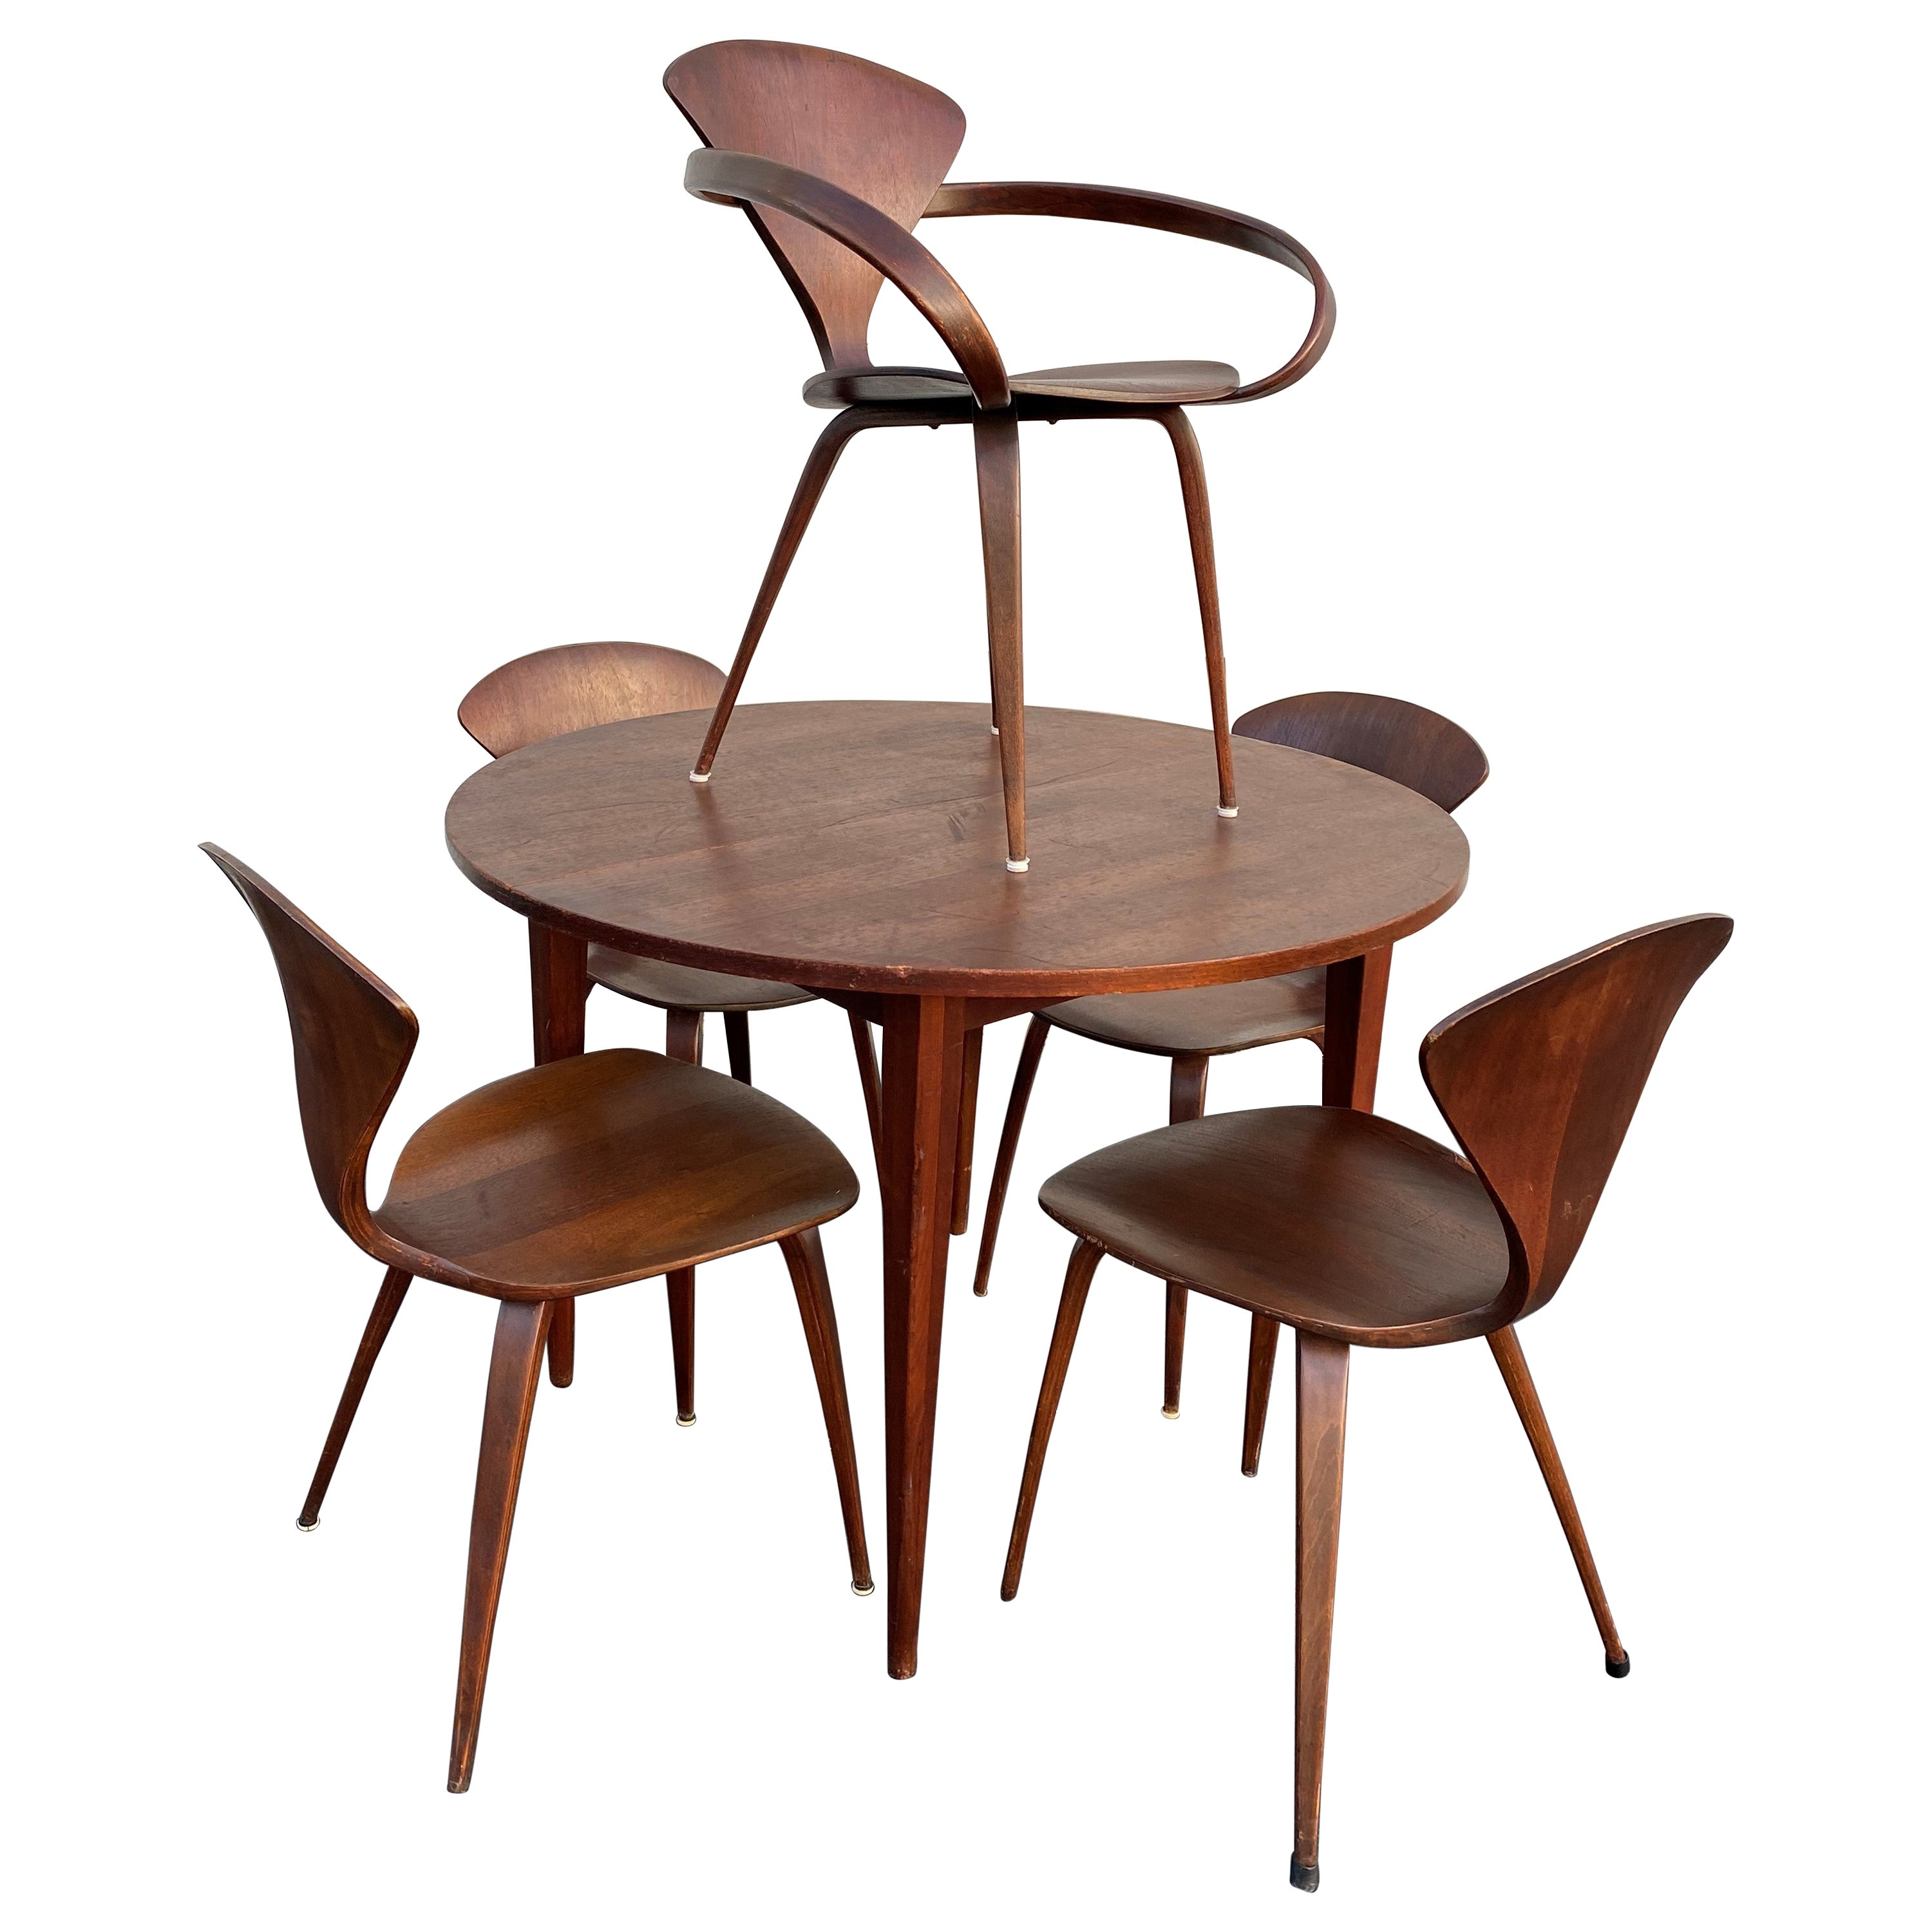 Midcentury Norman Cherner Round Table and 5 Pretzel Bentwood Chairs for Plycraft